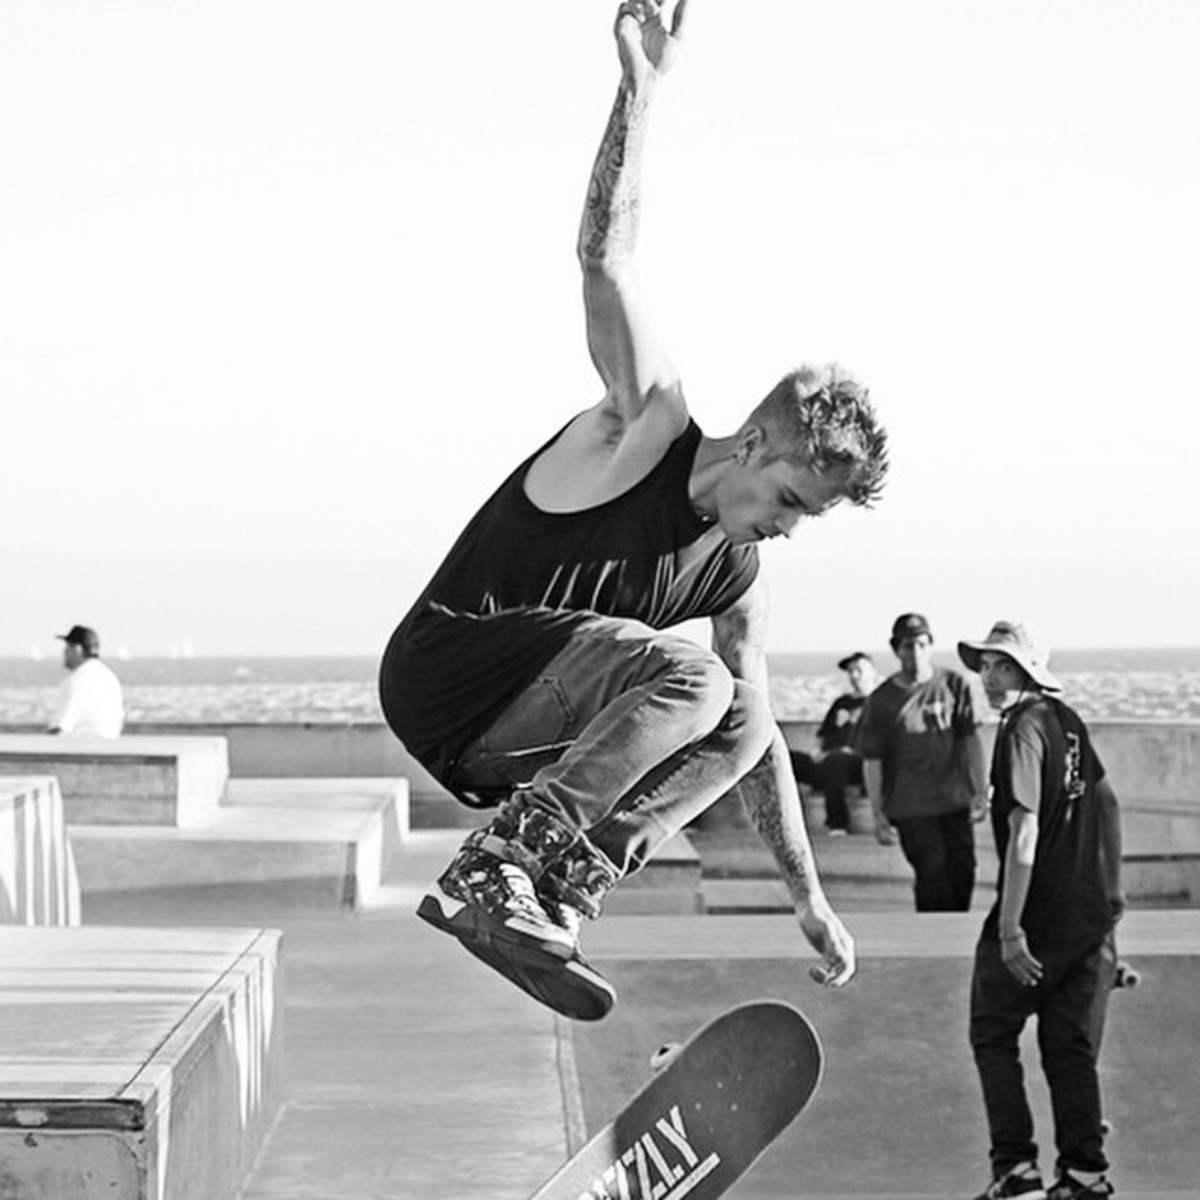 Biebs catching air off a skateboard